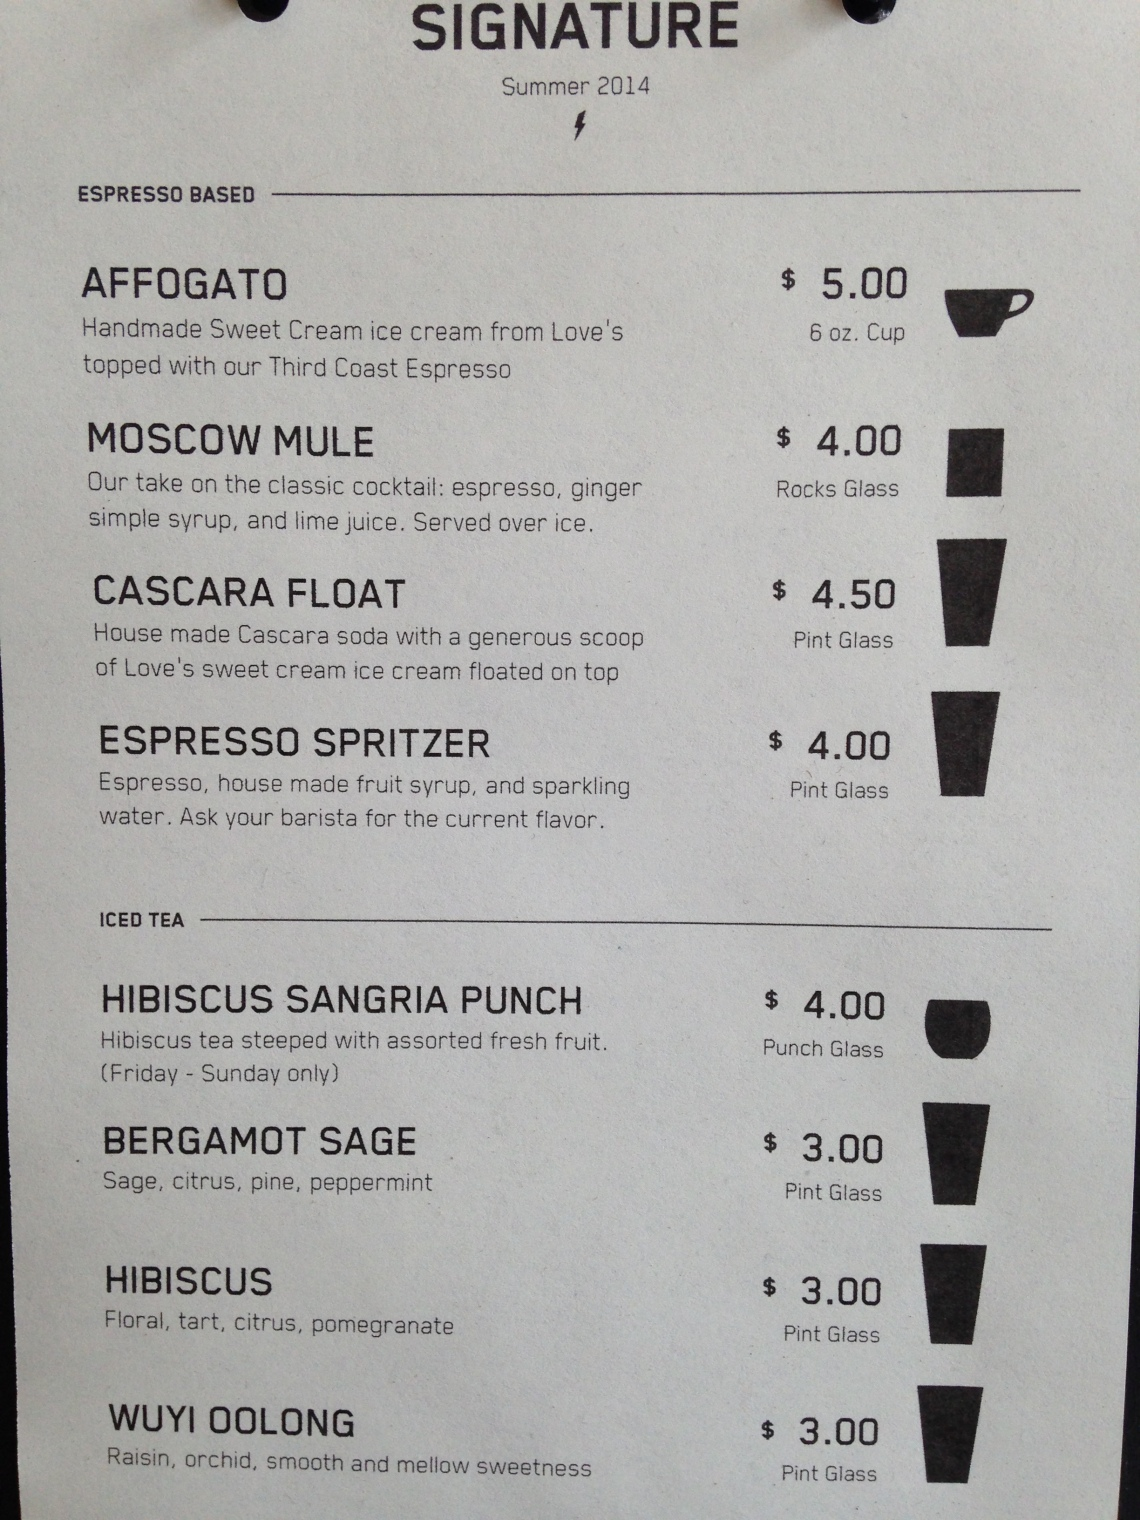 Madcap menu of mocktails of glory! THIS is what I'm talking about!